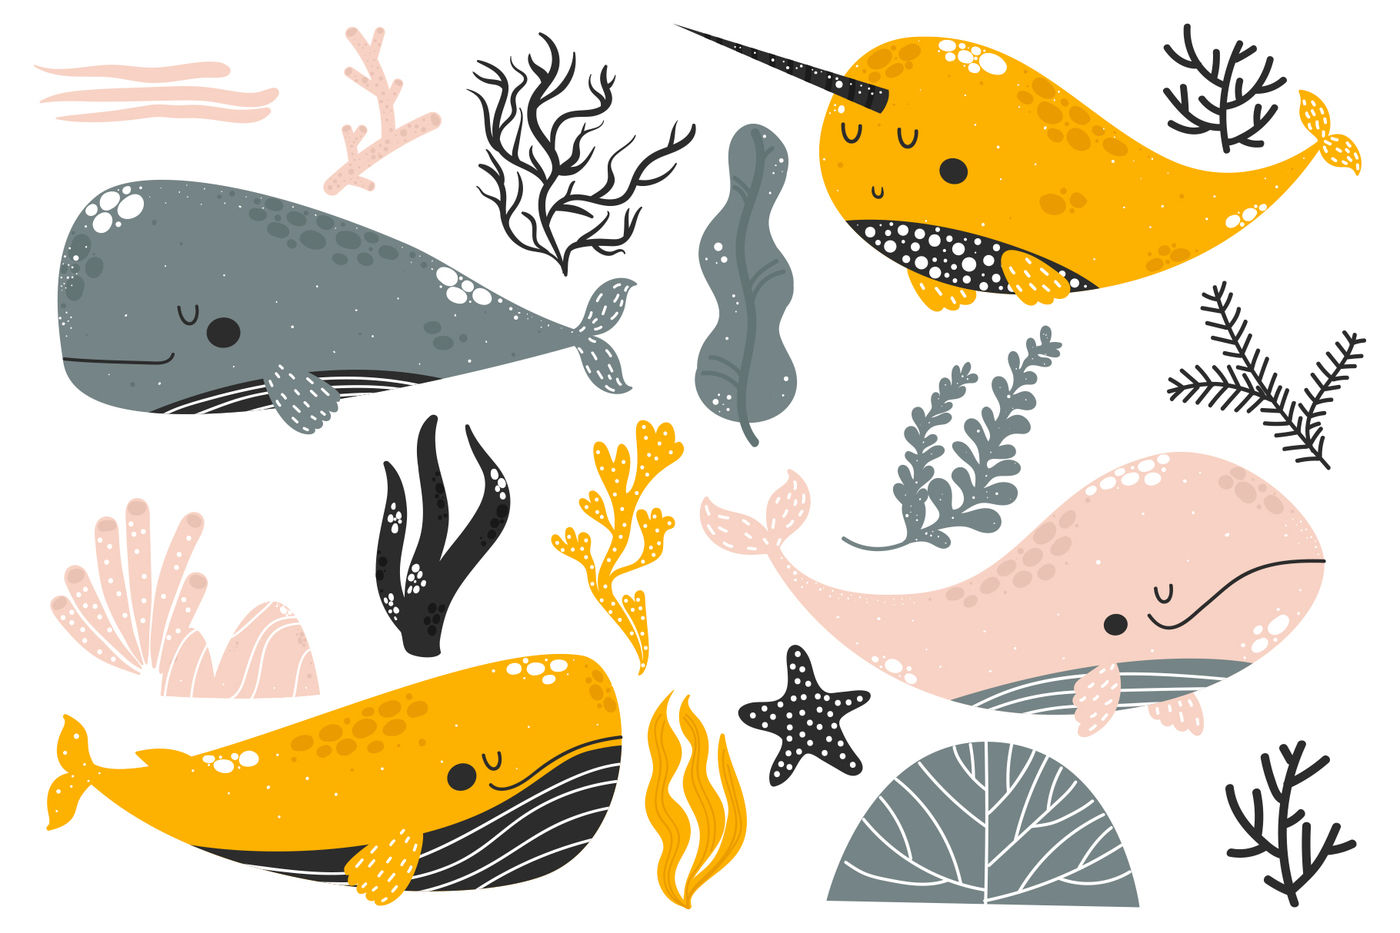 Whales - Cute Characters By Misky   TheHungryJPEG.com